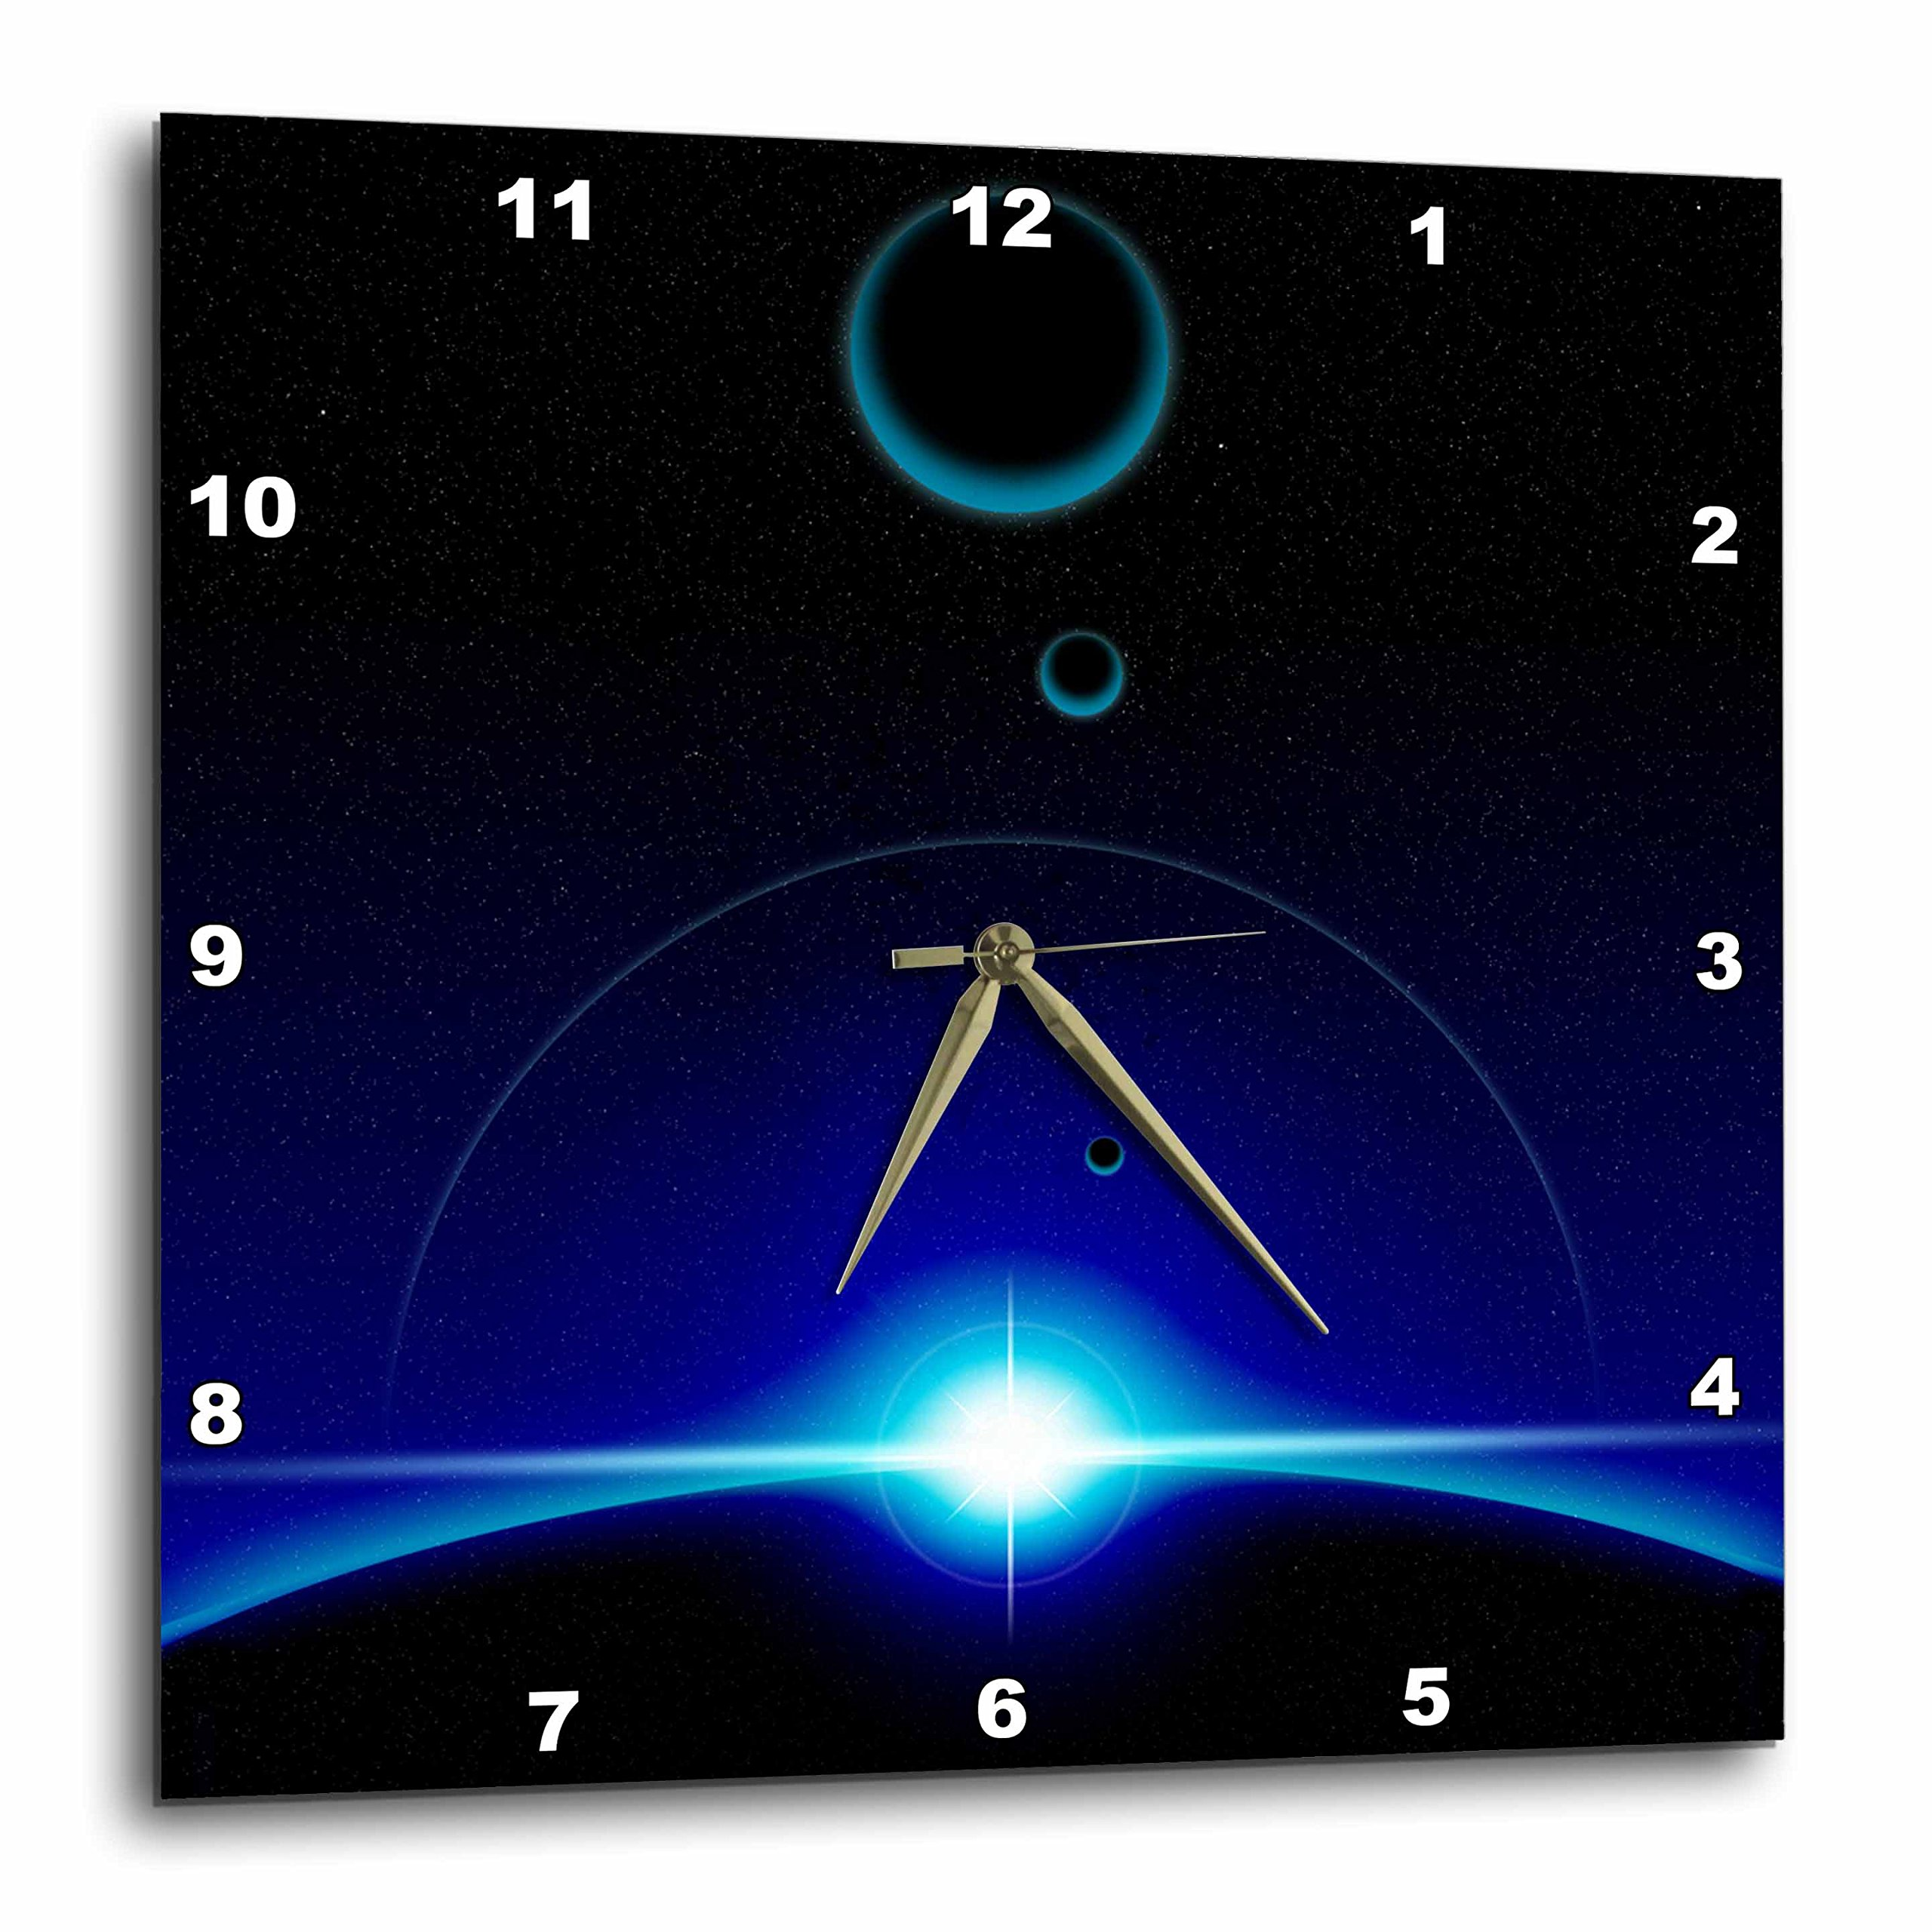 3dRose dpp_19255_1 Solar Scene Shows The Blue Light of a Star Cresting The Top Edge of a Planet in Space Wall Clock, 10 by 10-Inch